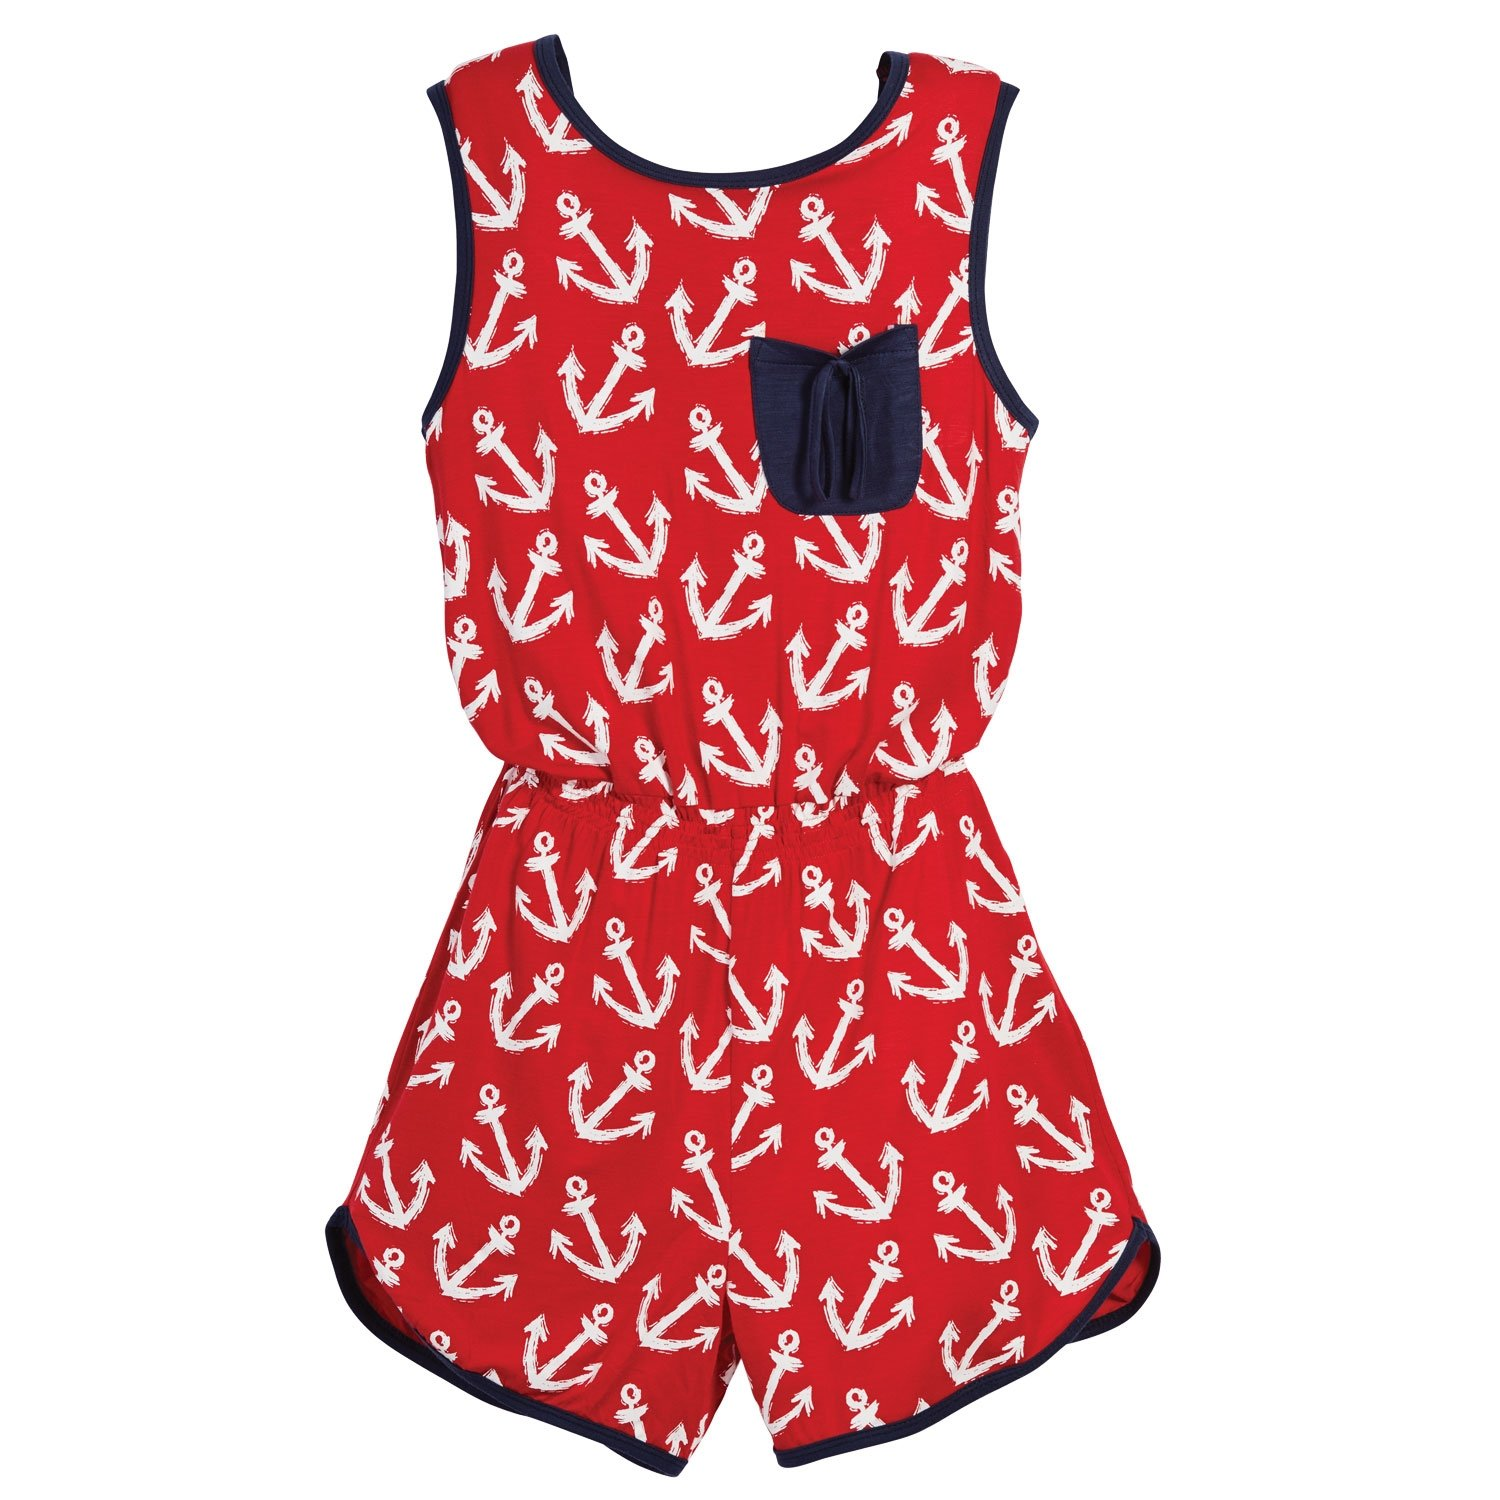 Beachcombers Girl's Tops Rayon/Spandex Anchor Romper Red/White Large by Beachcombers (Image #1)